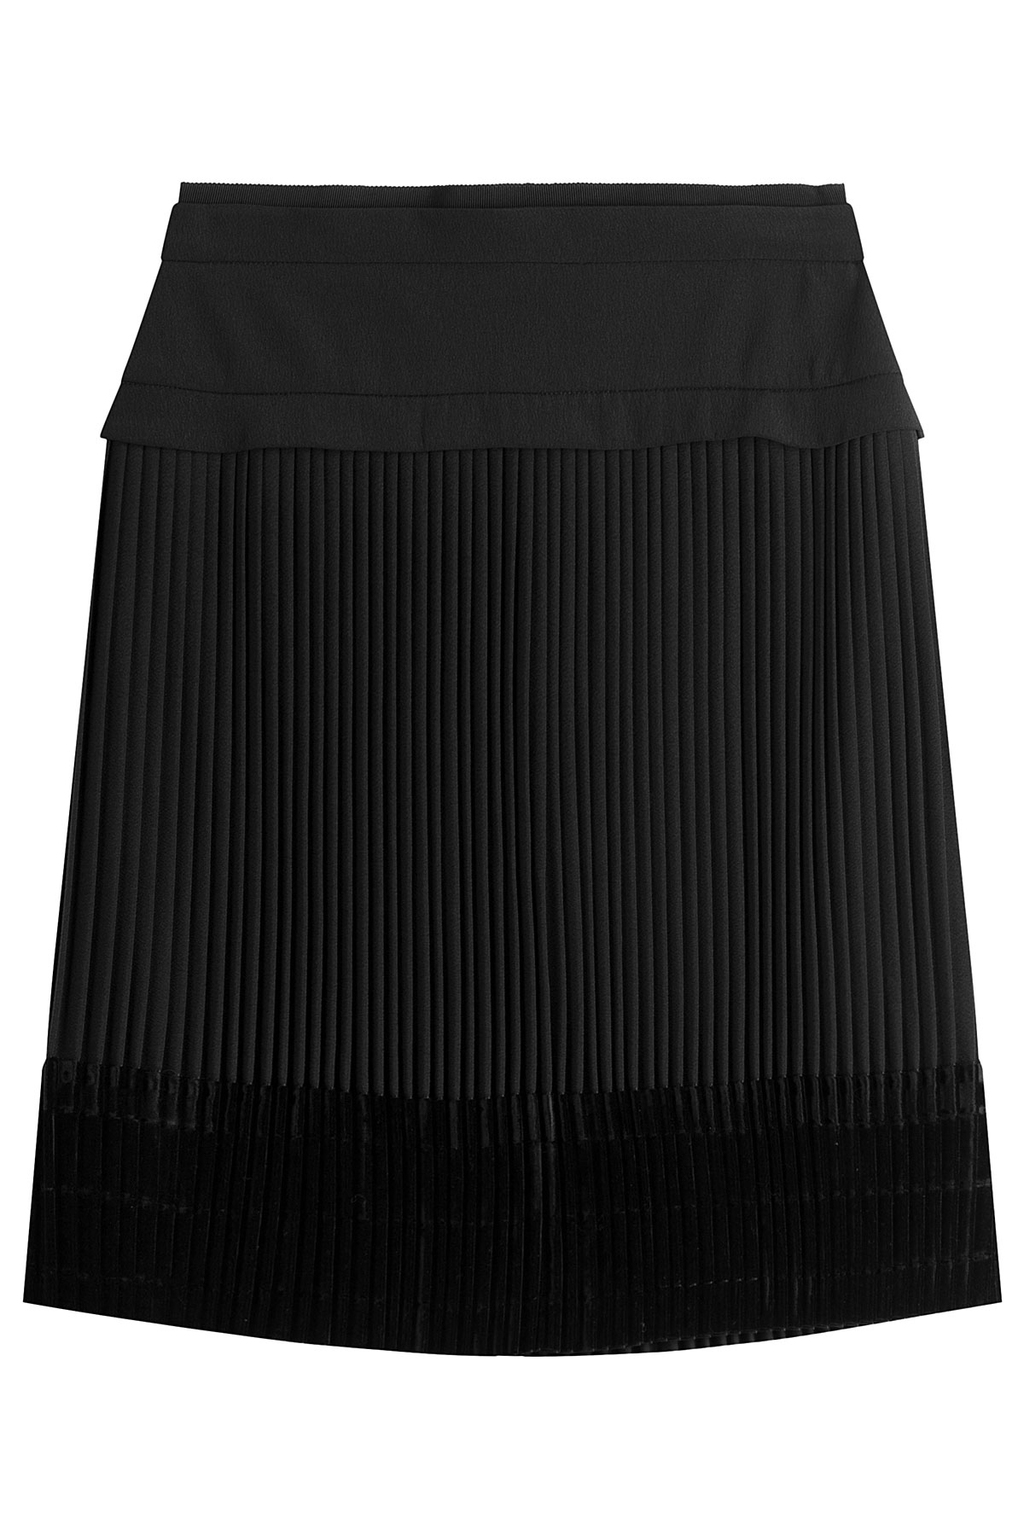 Pleated Skirt With Velvet - pattern: plain; fit: loose/voluminous; waist: mid/regular rise; predominant colour: black; occasions: casual, work, creative work; length: just above the knee; style: a-line; fibres: polyester/polyamide - 100%; pattern type: fabric; texture group: velvet/fabrics with pile; season: a/w 2016; wardrobe: highlight